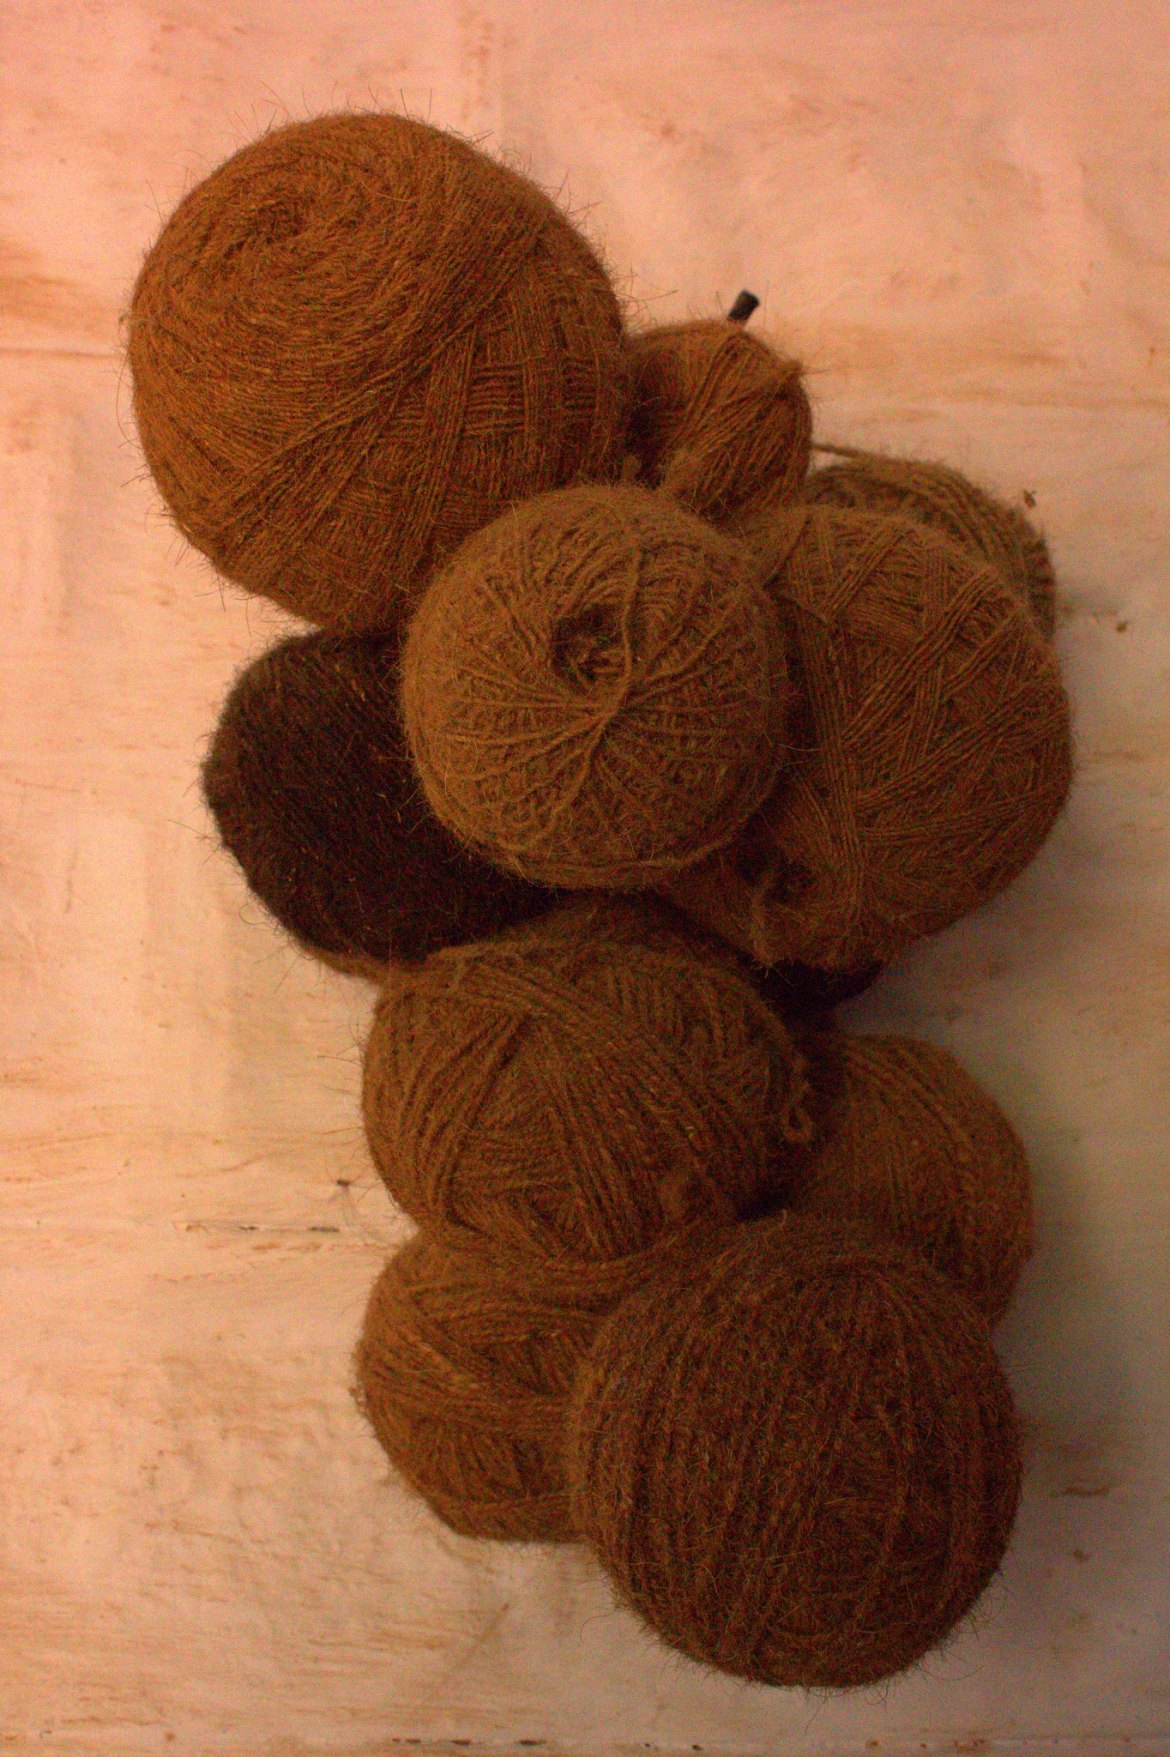 Camel wool balls kept for weaving in Salawas